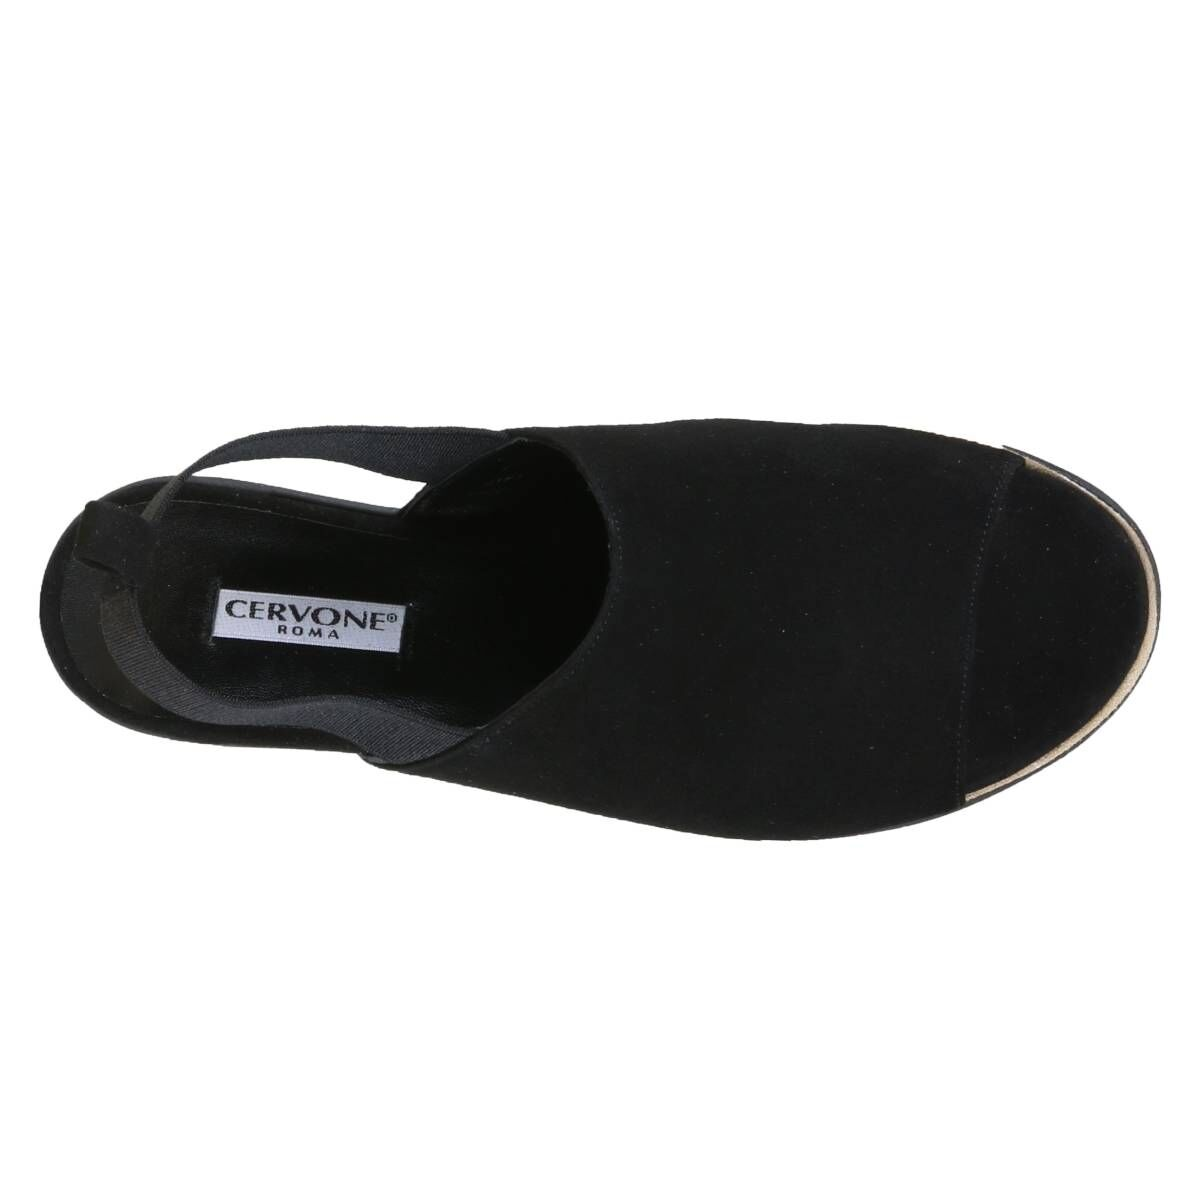 Cervone sandals 2052 black at Penninkhoffashion.com